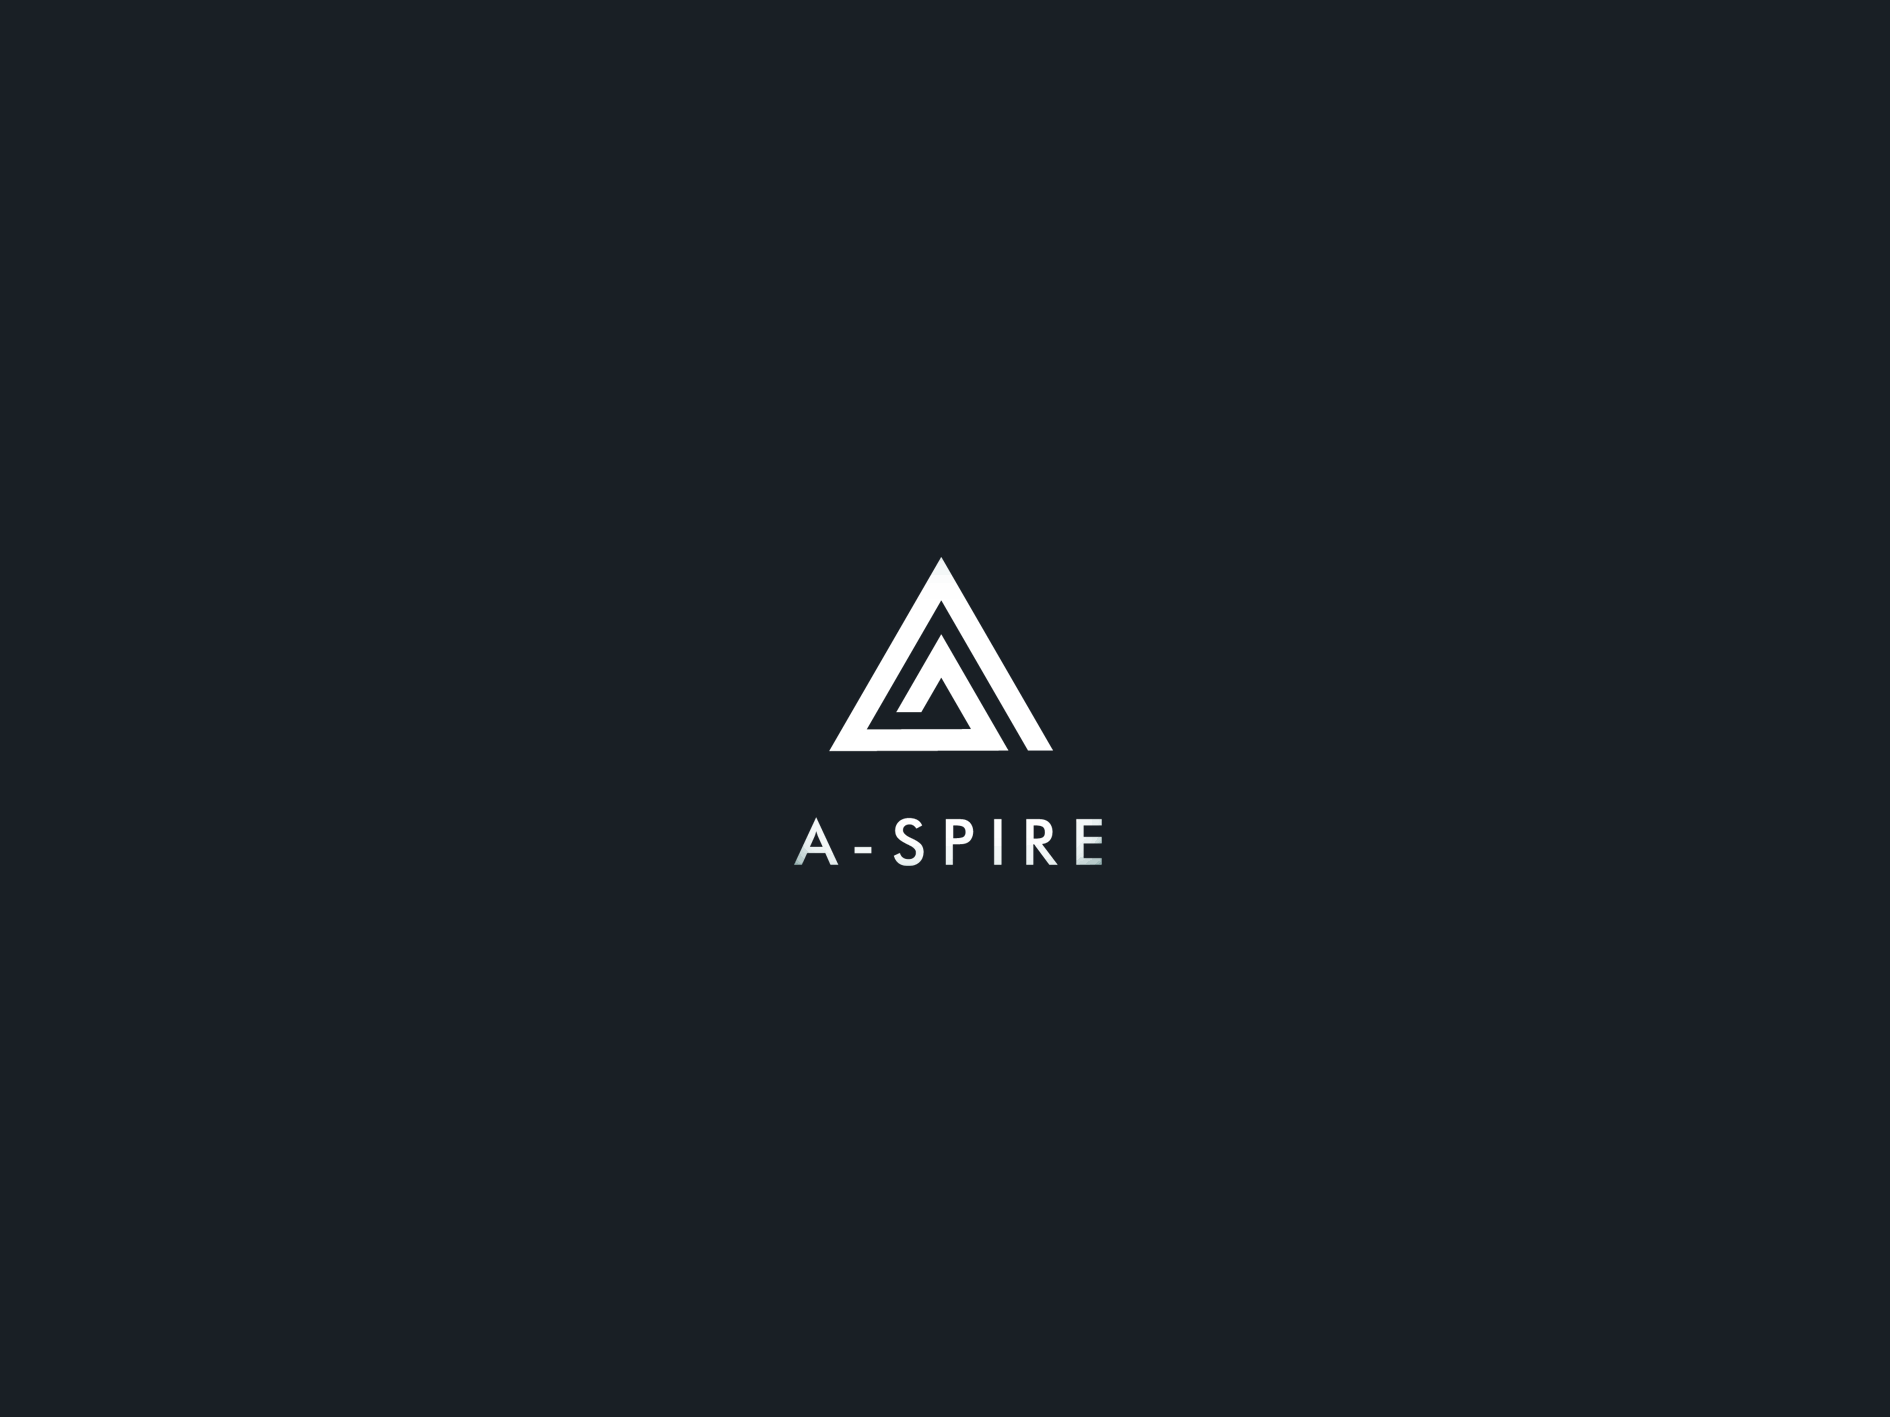 A logo for  A-SPIRE